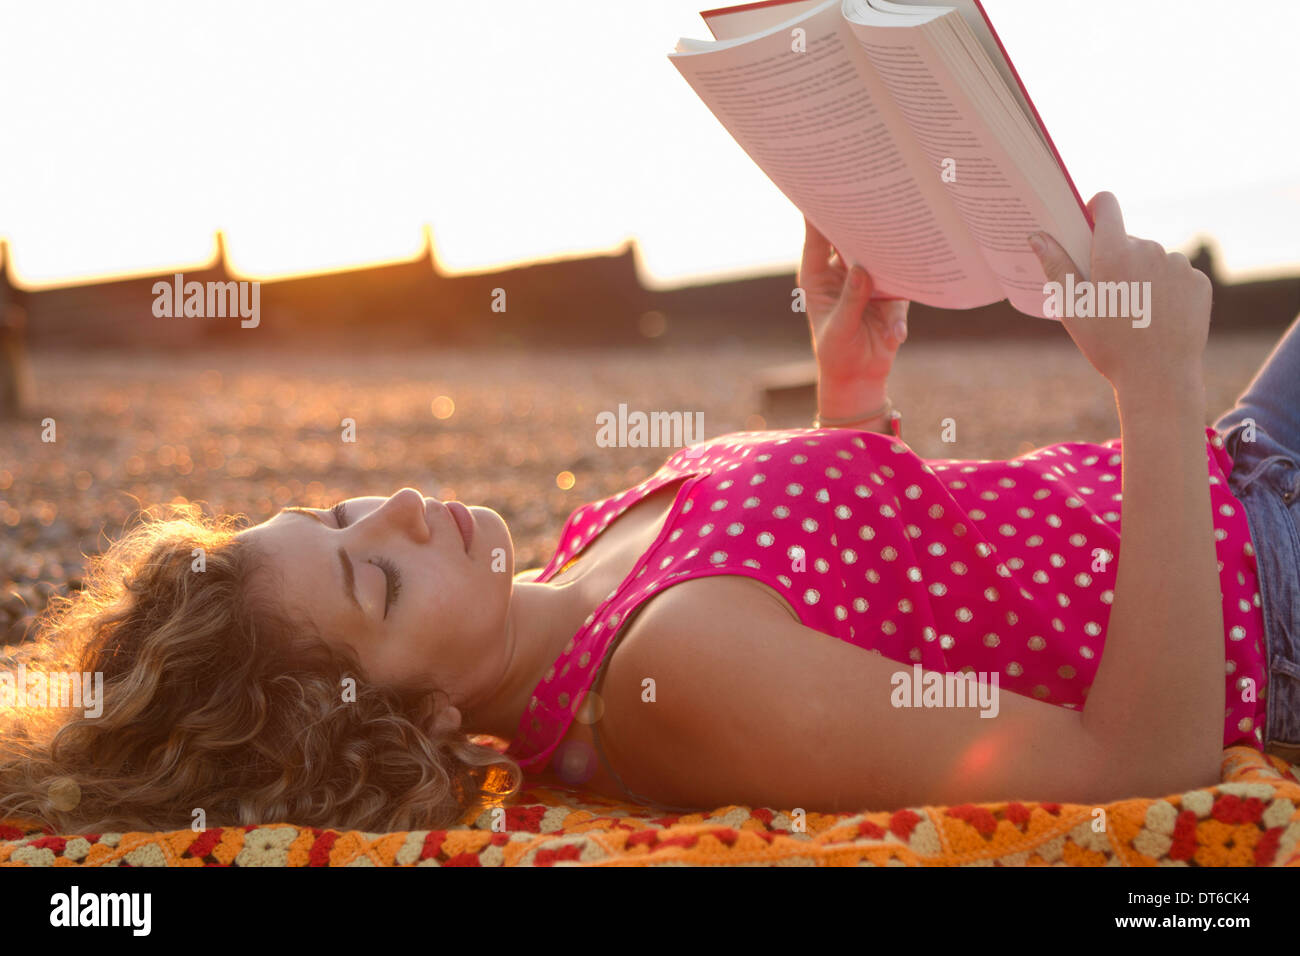 Young woman lying on beach reading book Photo Stock